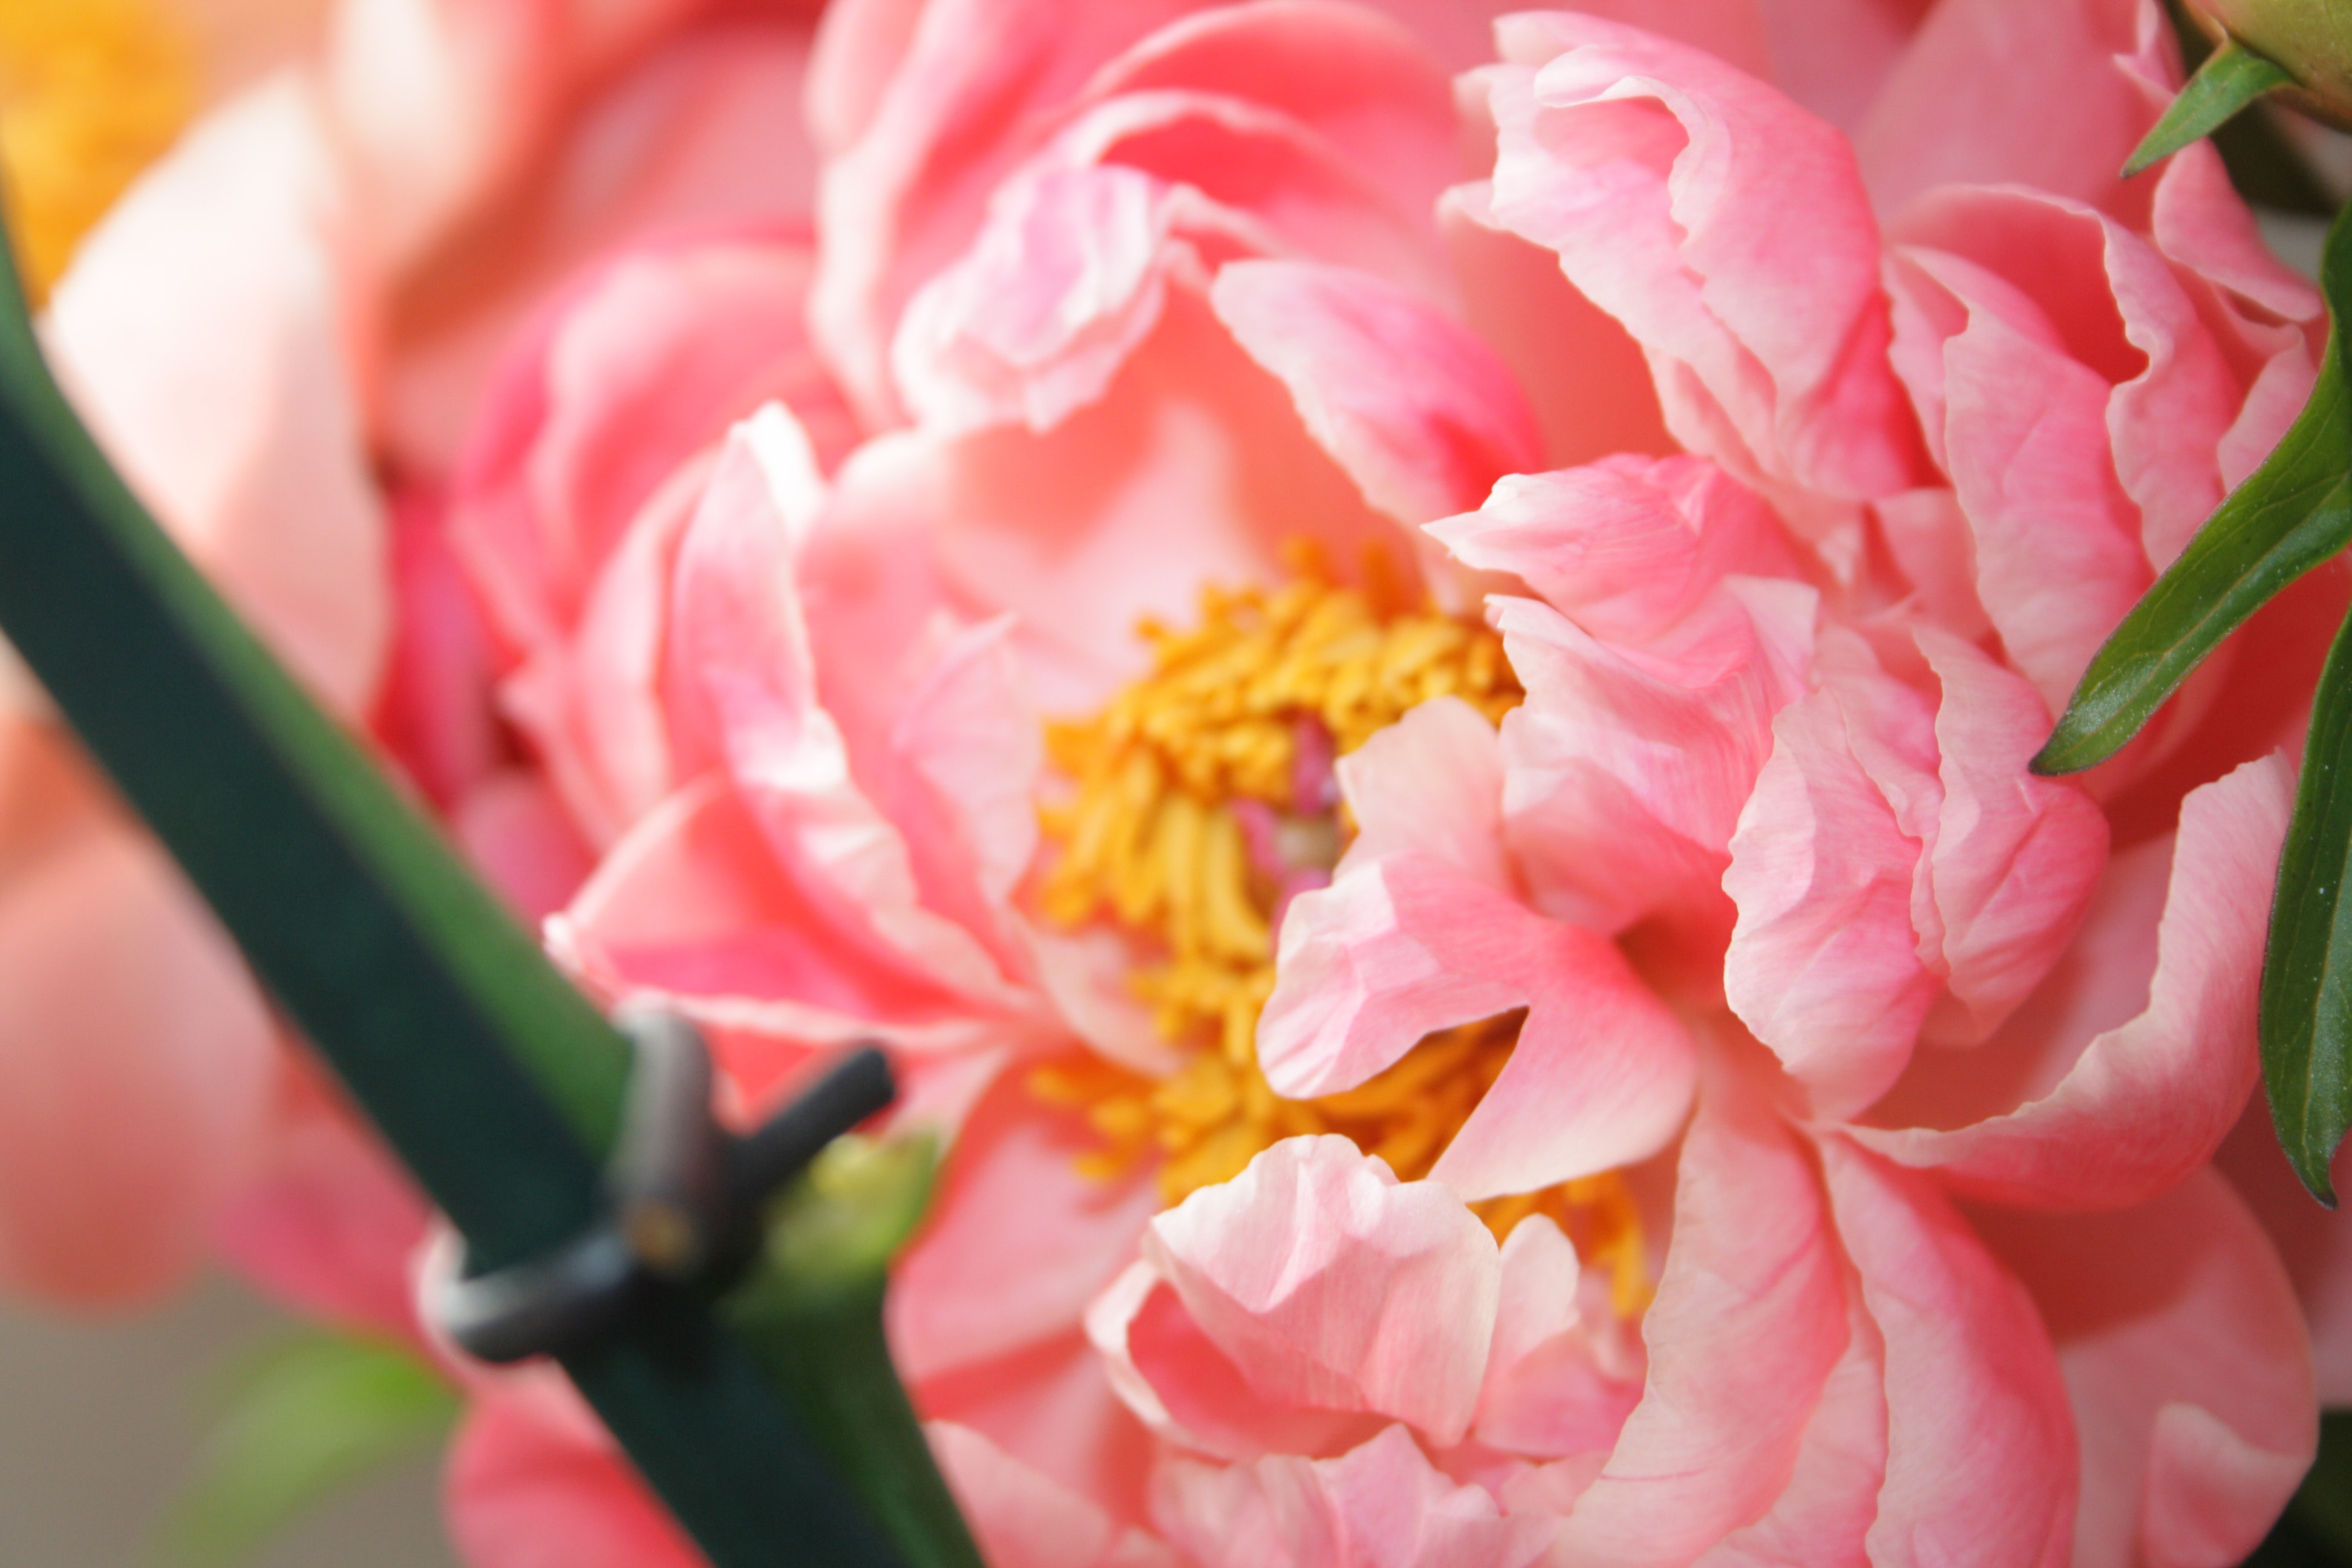 close up photo of pink and yellow flower